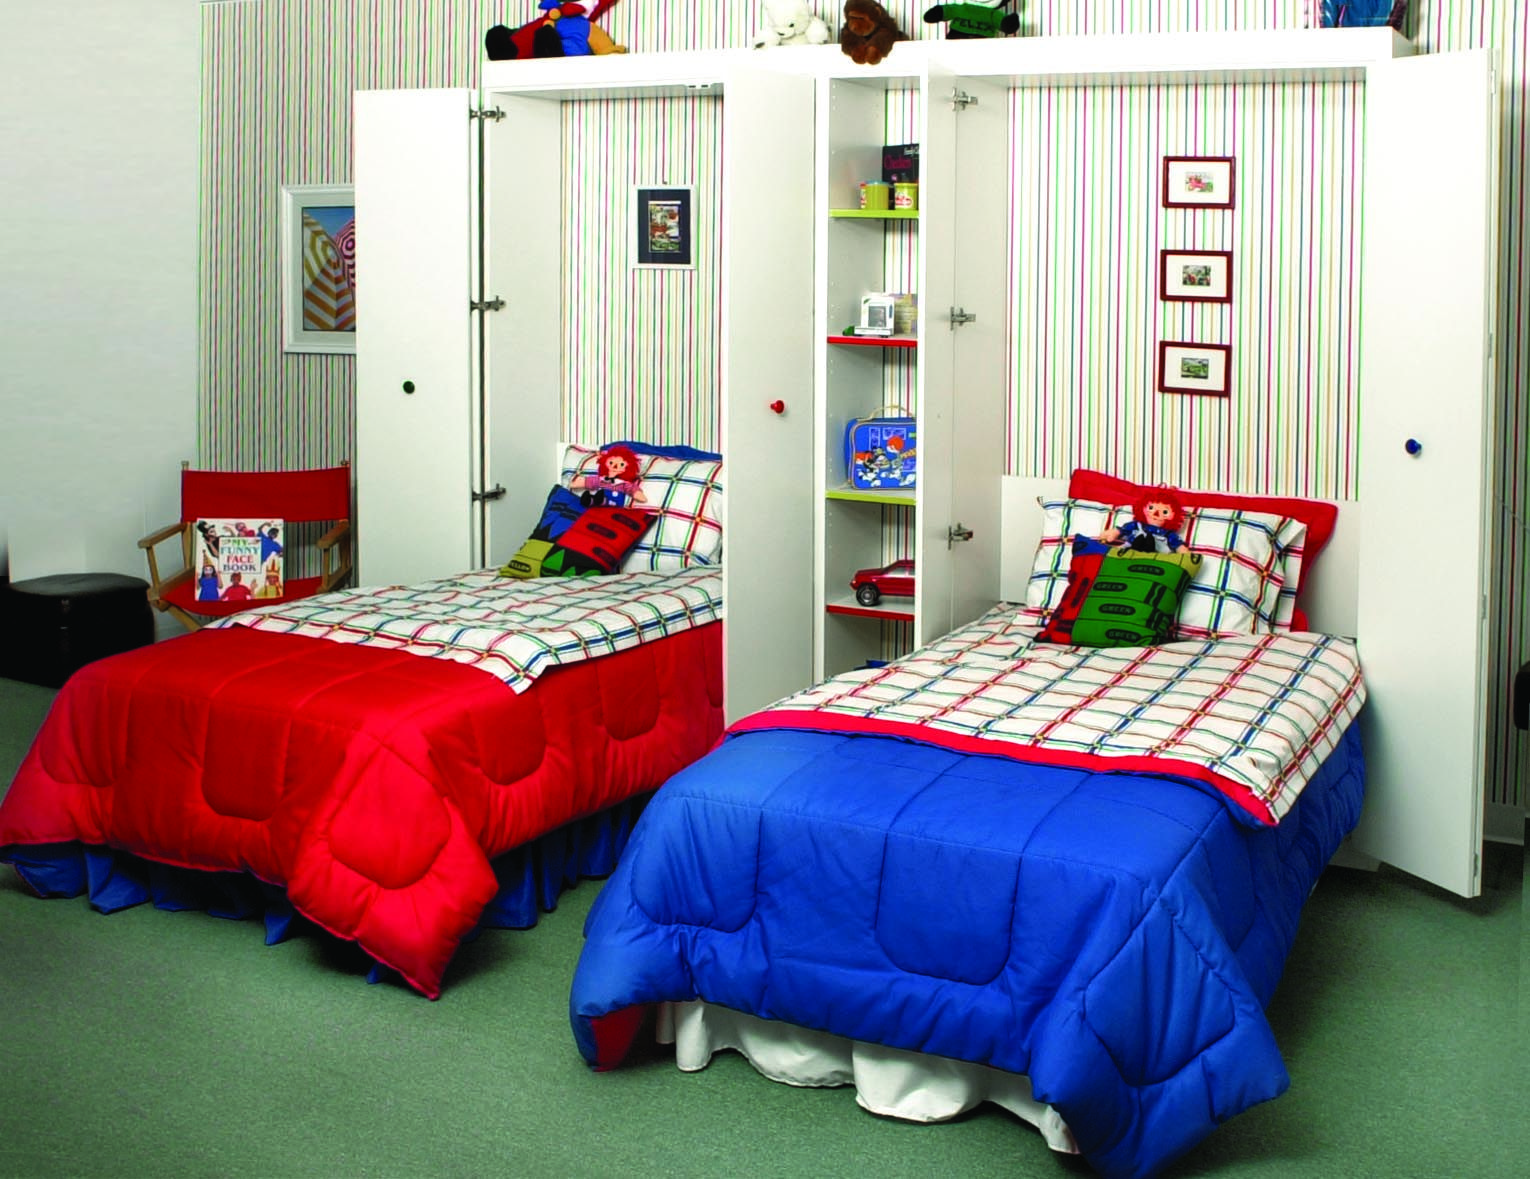 Sleeping Bed And Day Bed In One With Reading Shelves Space Saving Kids Room Furniture Design And Layout Toddler House Bed Toddler Rooms Creative Kids Rooms